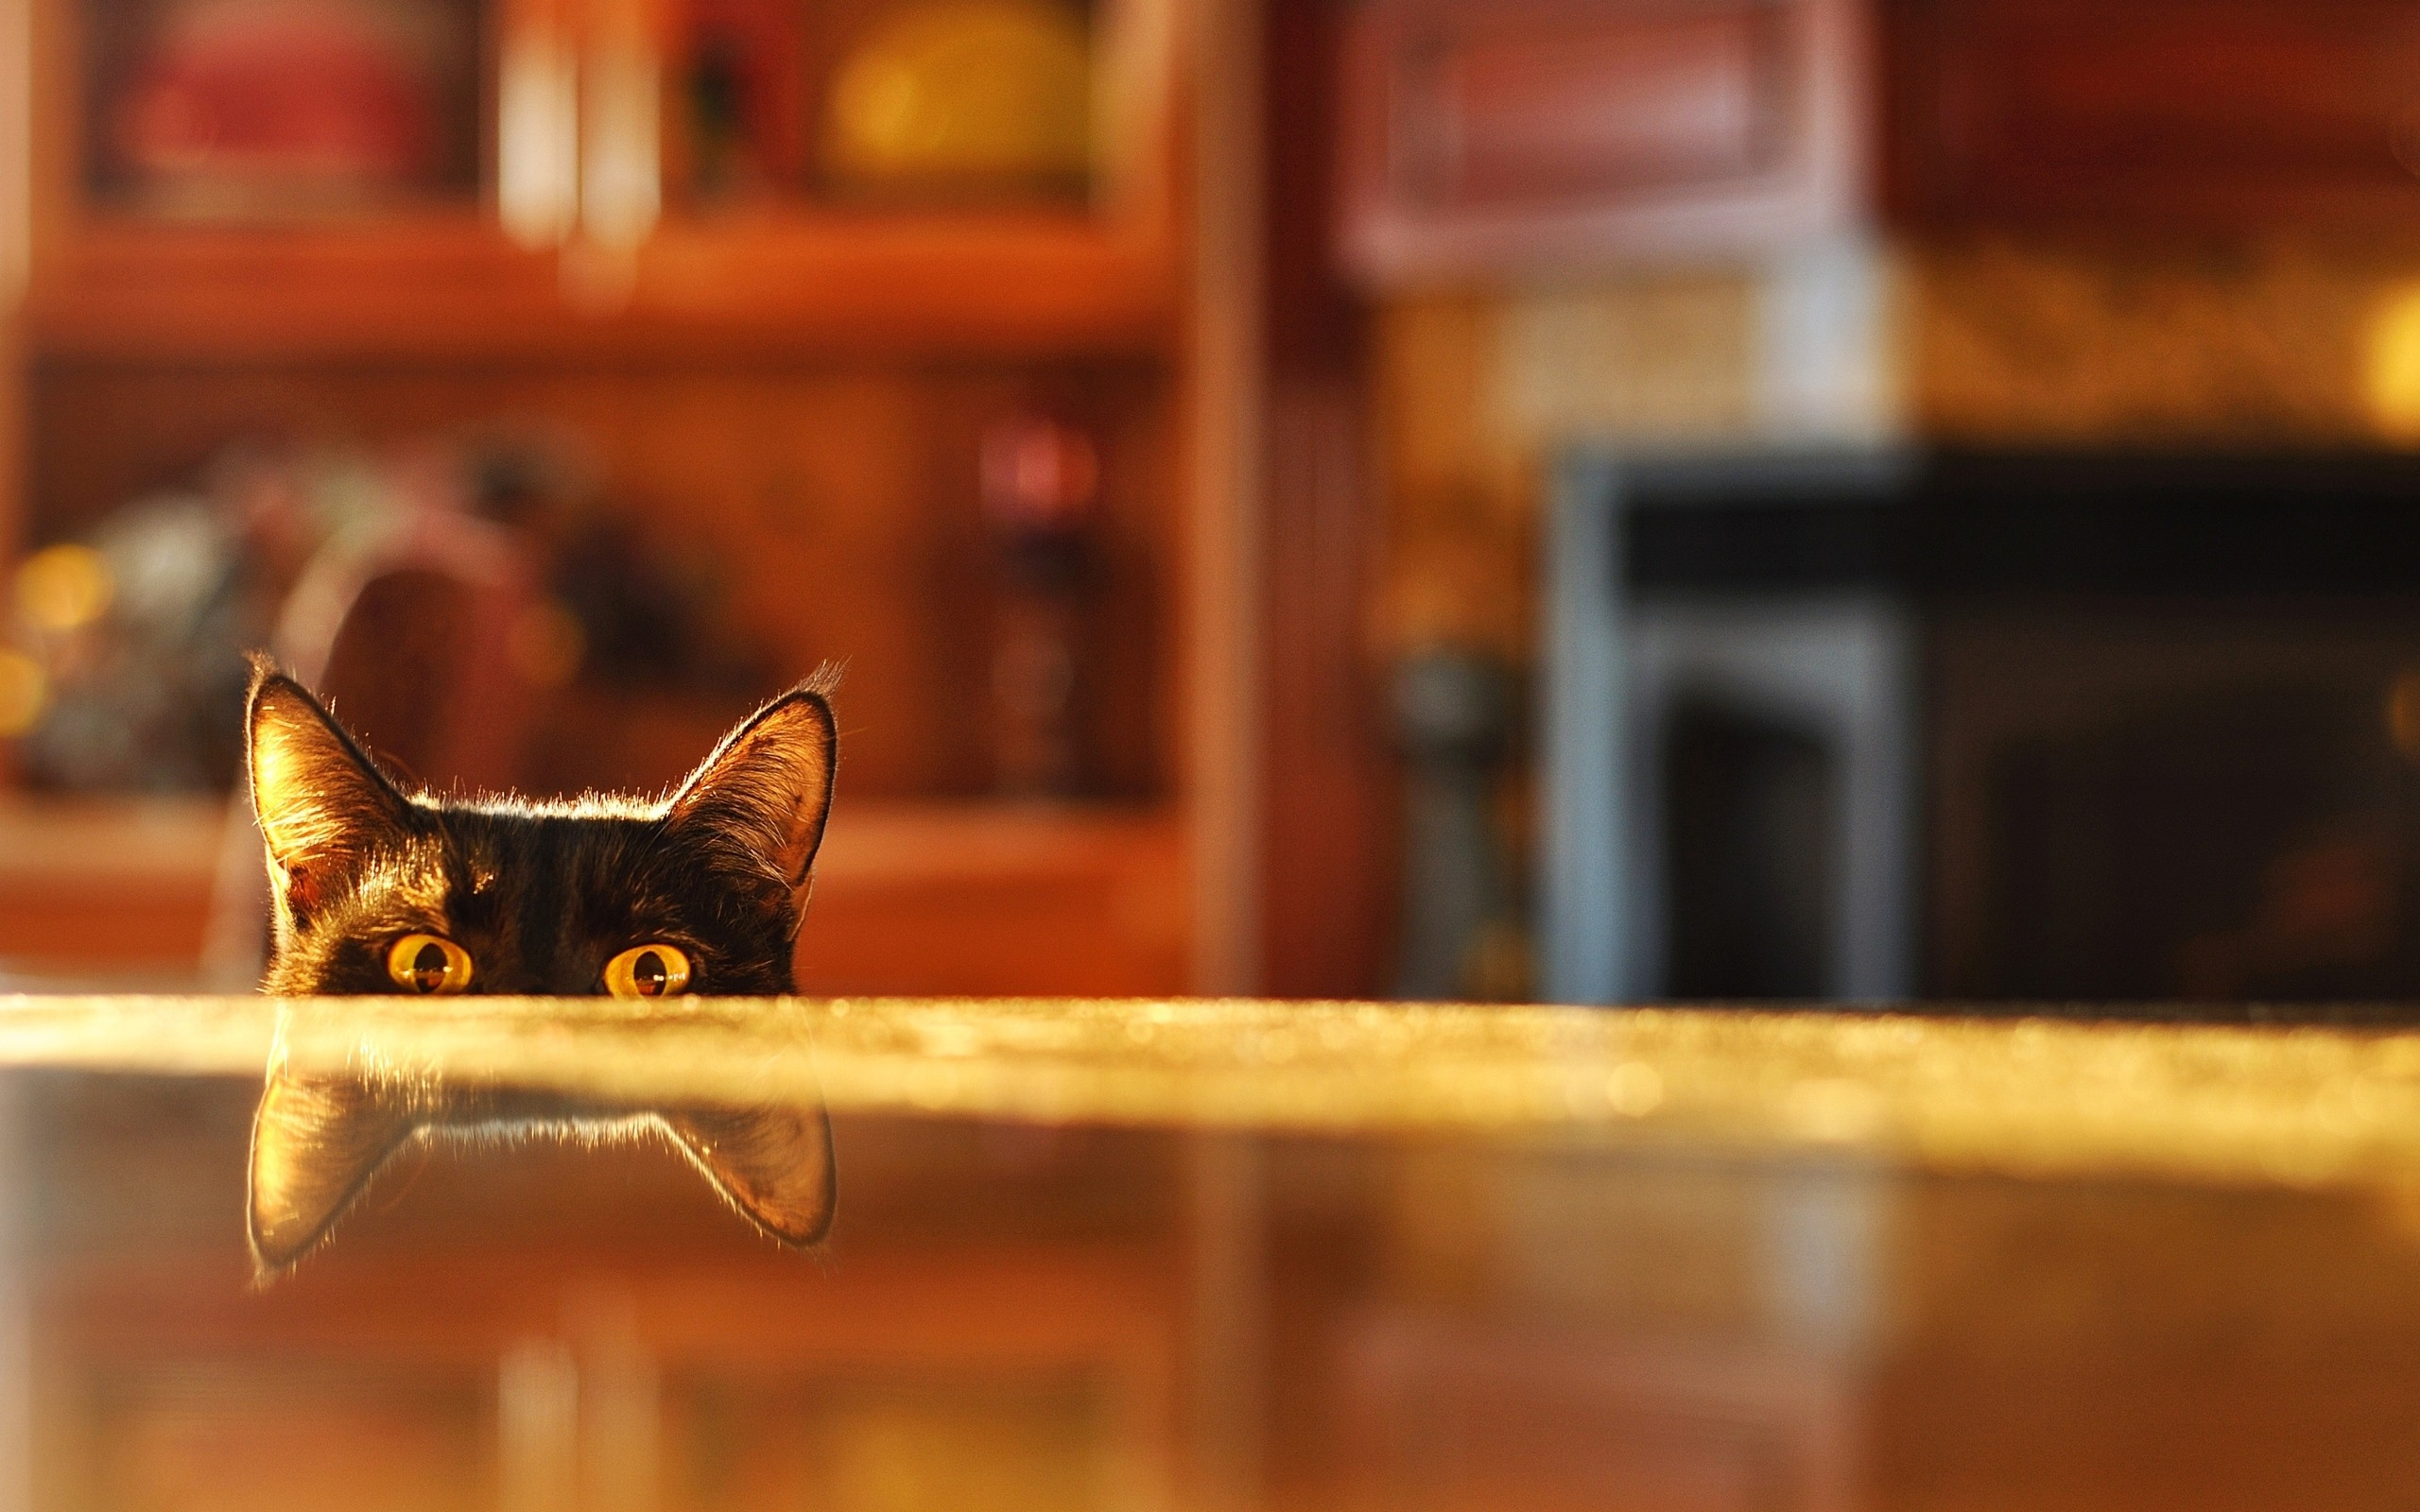 Eyes Cats Depth Of Field Reflections Tabletop Wallpaper 2560x1600 63392 Wallpaperup